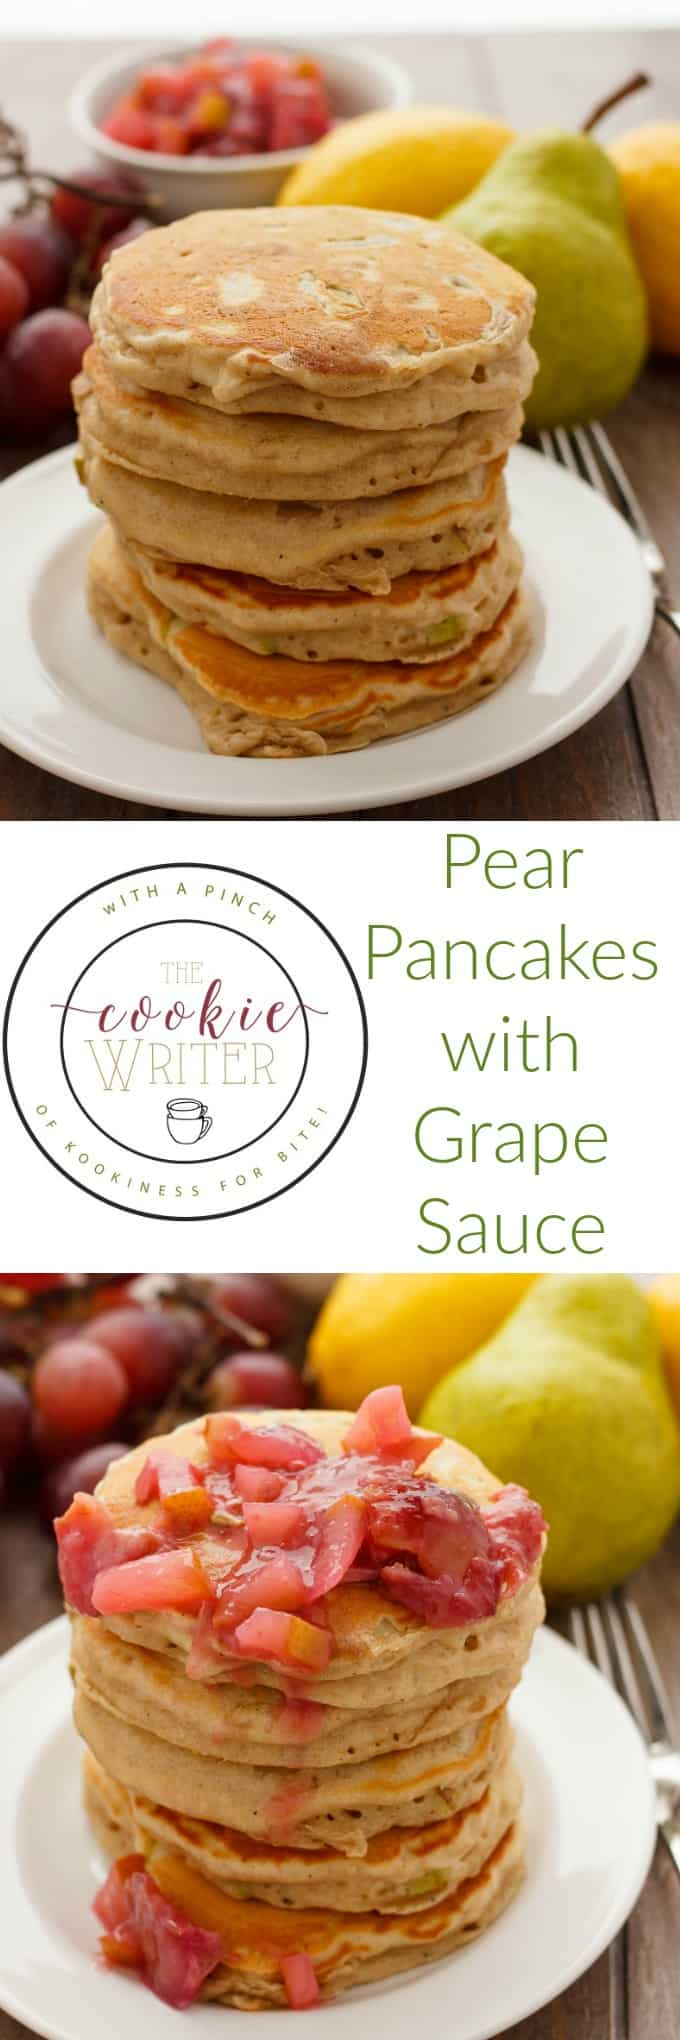 Pear Pancakes with Grape Sauce #pancakes